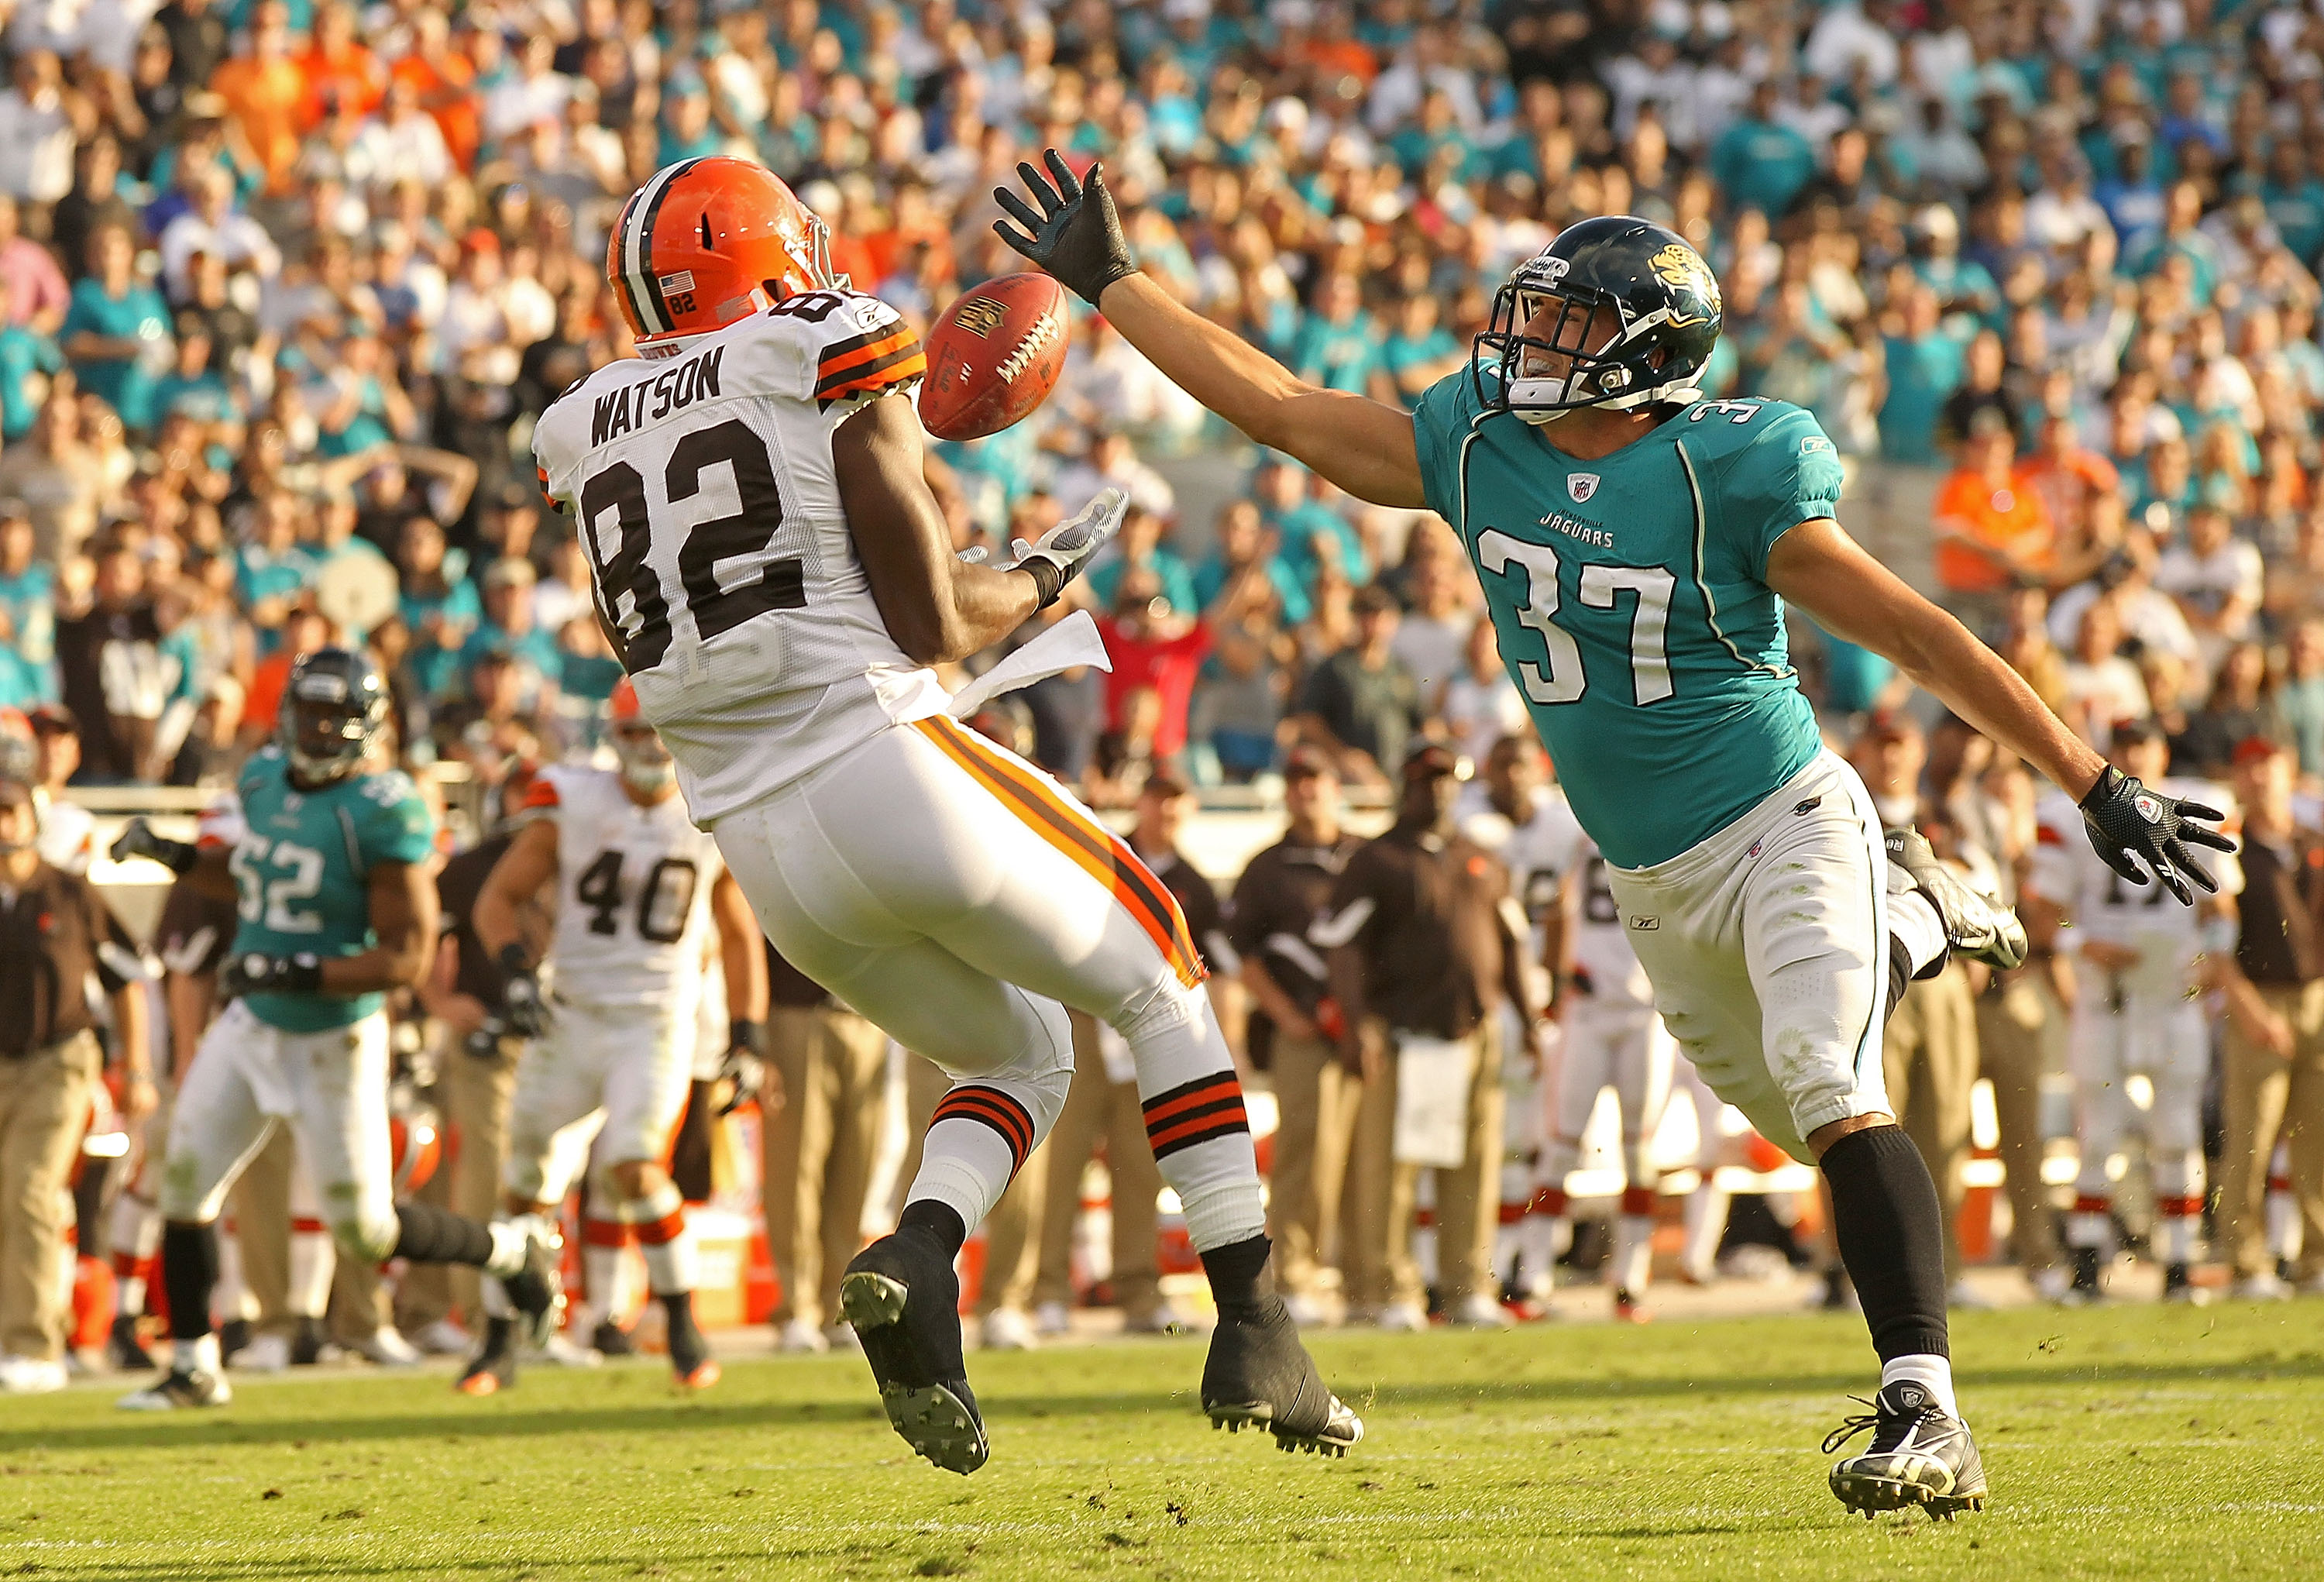 JACKSONVILLE, FL - NOVEMBER 21:  Sean Considine #37 of the Jacksonville Jaguars recovers an interception from Benjamin Watson #82 to end the game   agaisnt the Cleveland Browns at EverBank Field on November 21, 2010 in Jacksonville, Florida.  (Photo by Mi